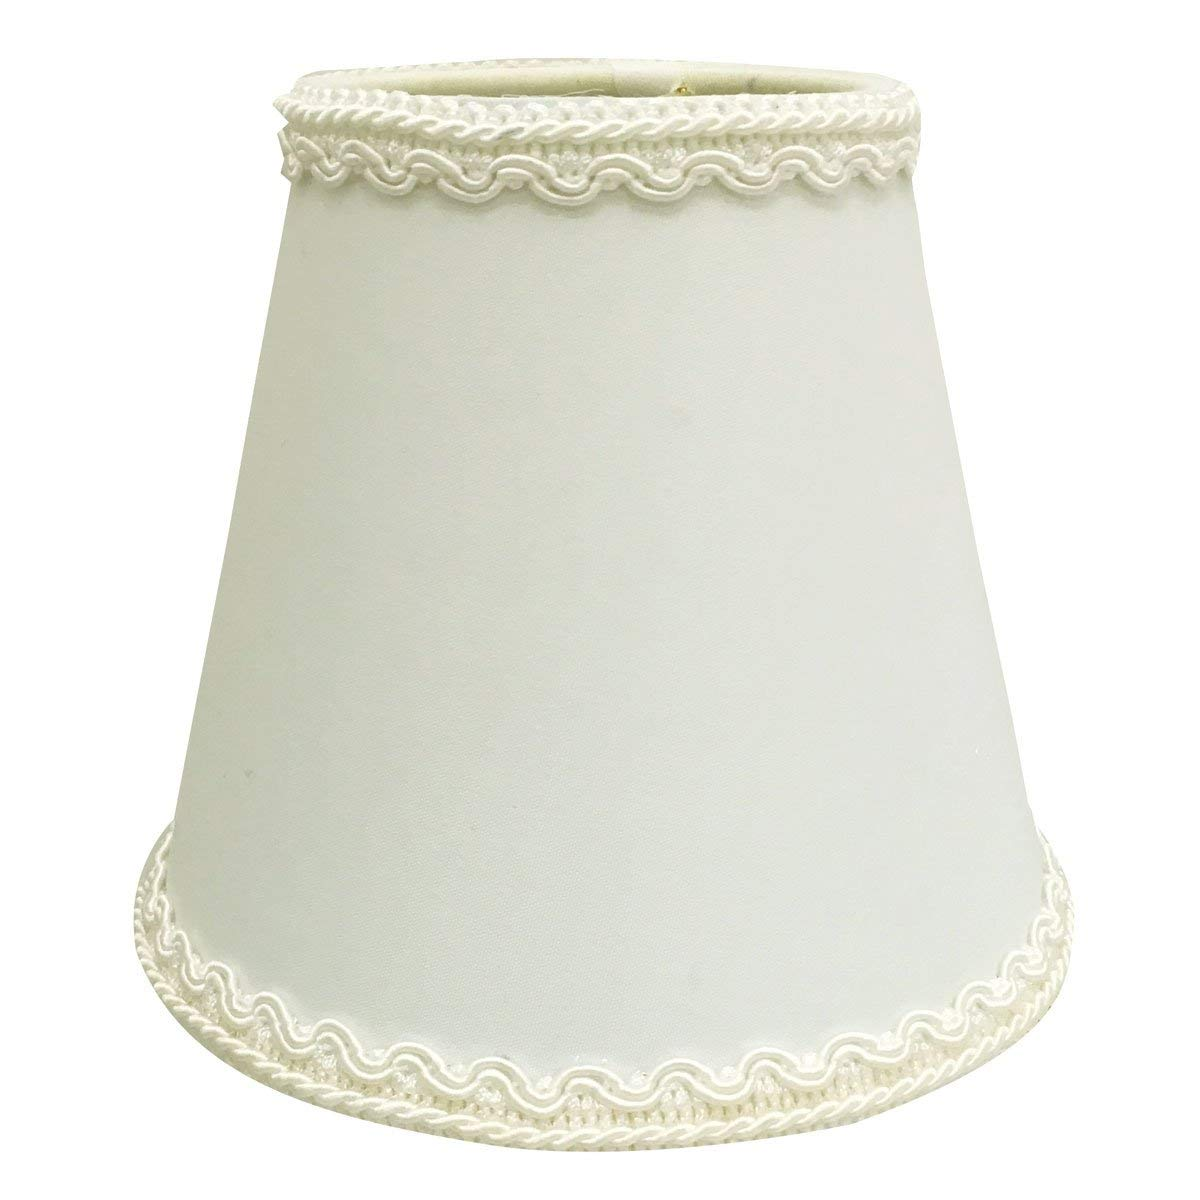 "Royal Designs, Inc CSO-1038-5WH Royal Designs Empire Chandelier Lamp Shade with Decorative Trim, 3"" x 5"" x 4.5"", Clip-on, White"